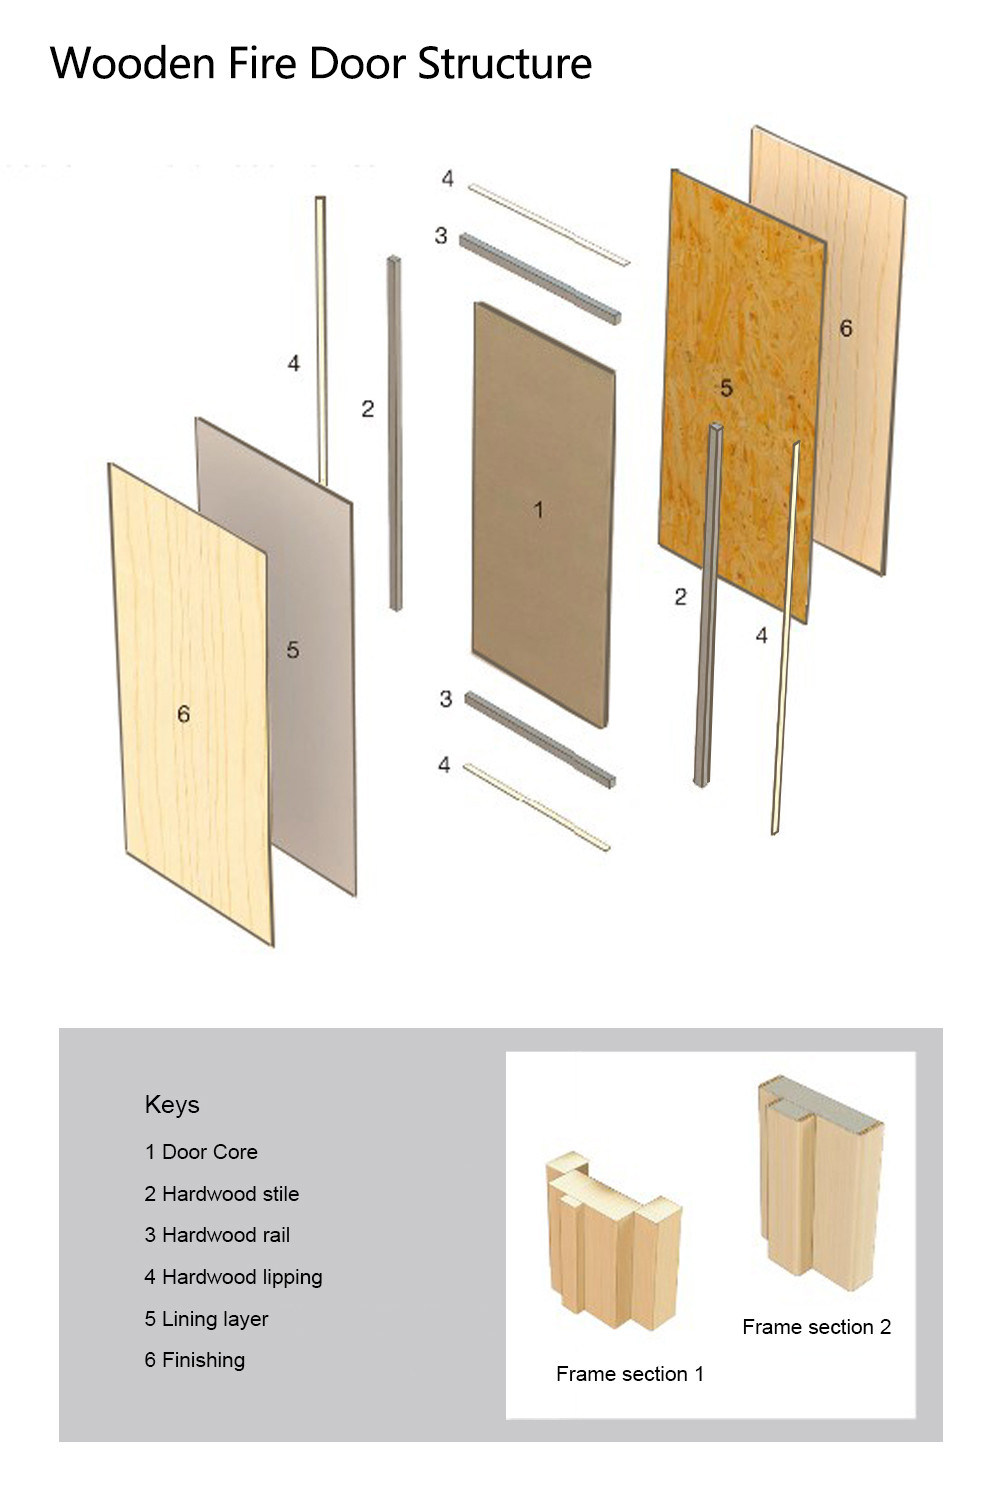 1-1/2 Hour American Standard Timber Fire Rated Door